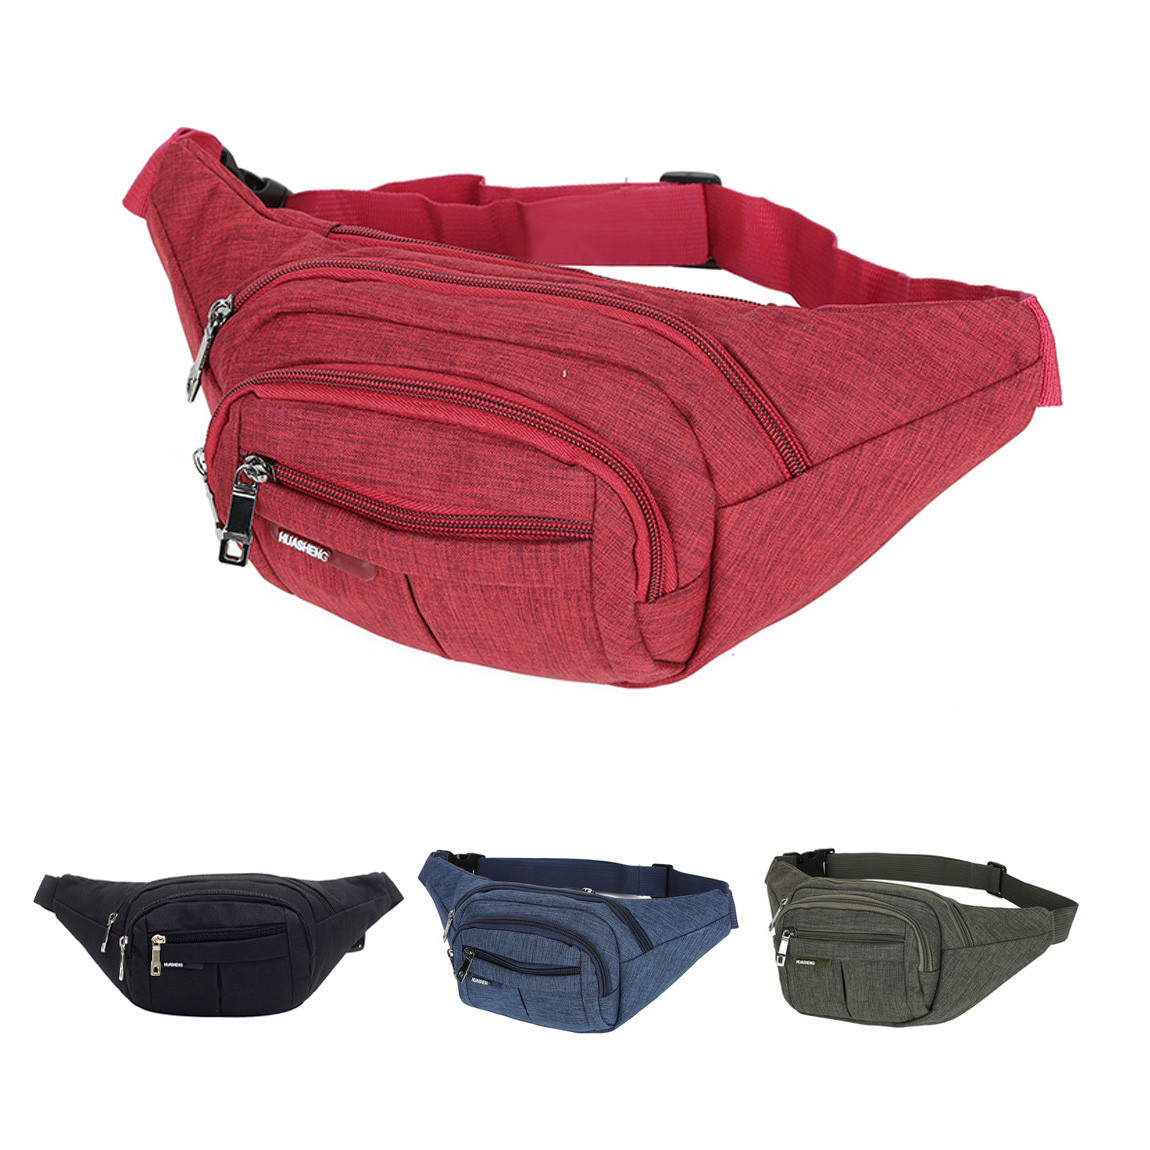 5 Colors New Unisex Waist Pack Men Women Fanny Pack Bum Bag Travelling Phone Money Pouch Banana Bags Female Belt Bags